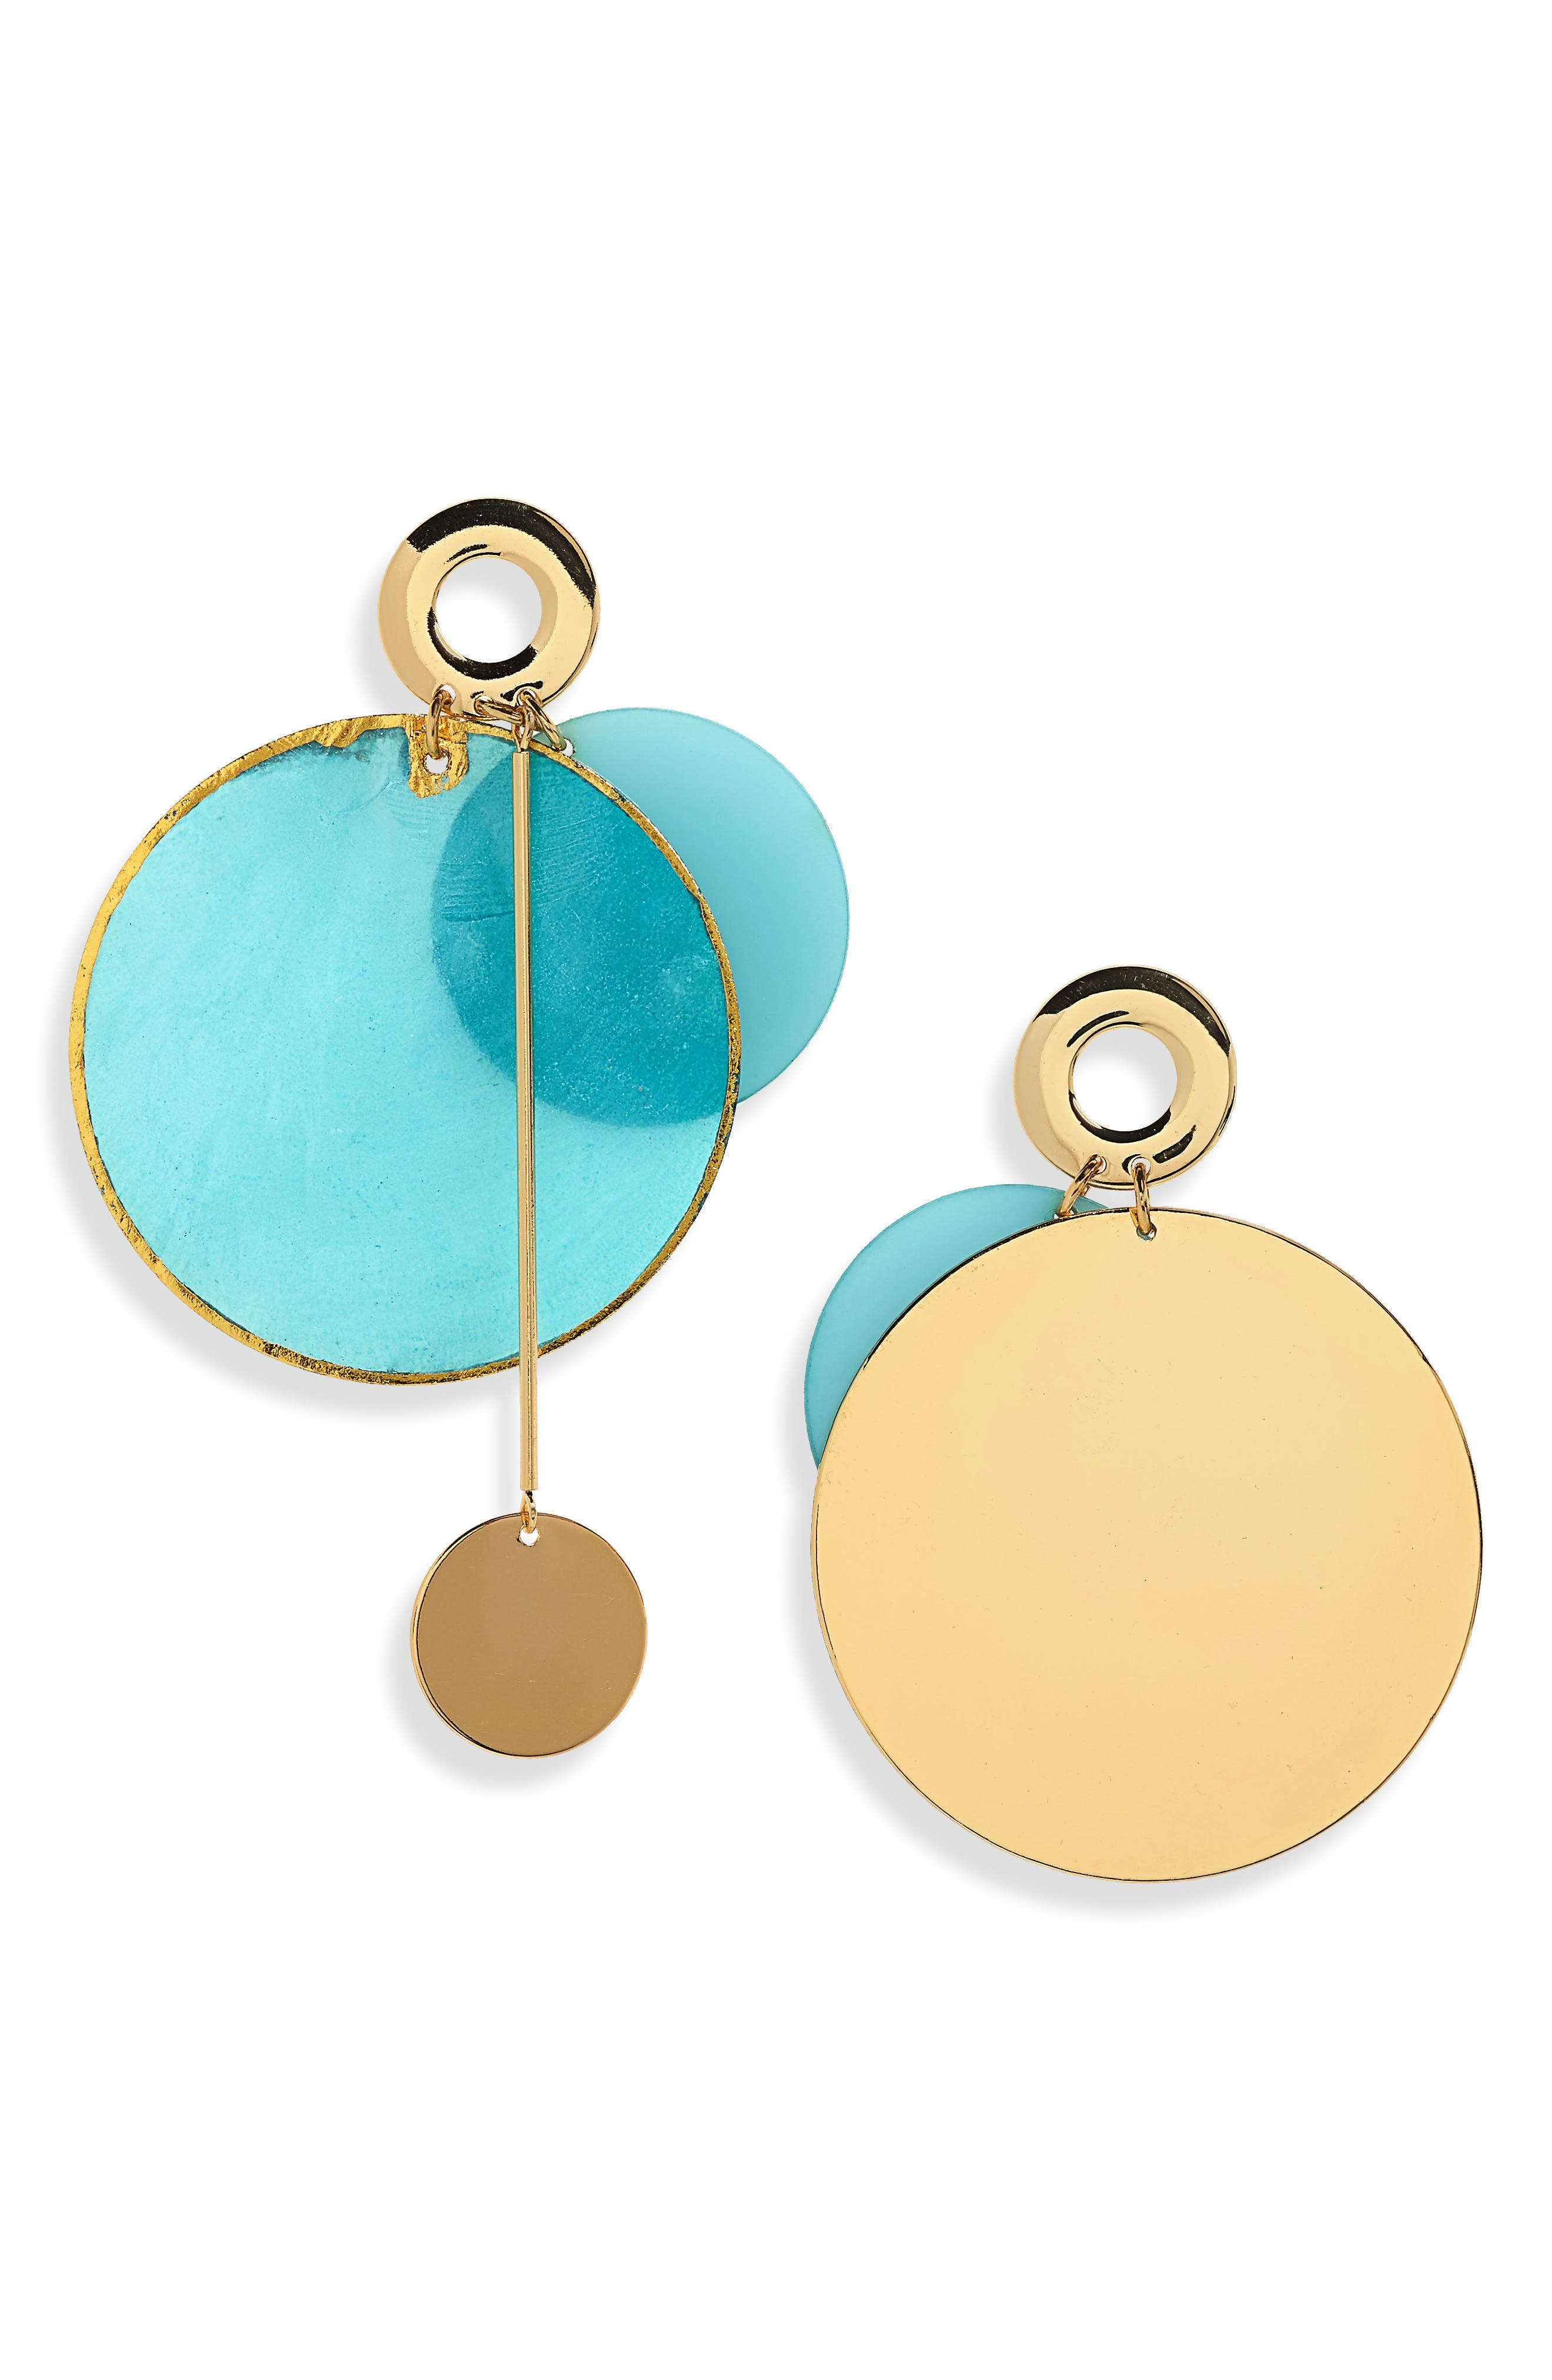 Acetate & Metal Disc Earrings,                             Main thumbnail 1, color,                             Gold/ Turquoise